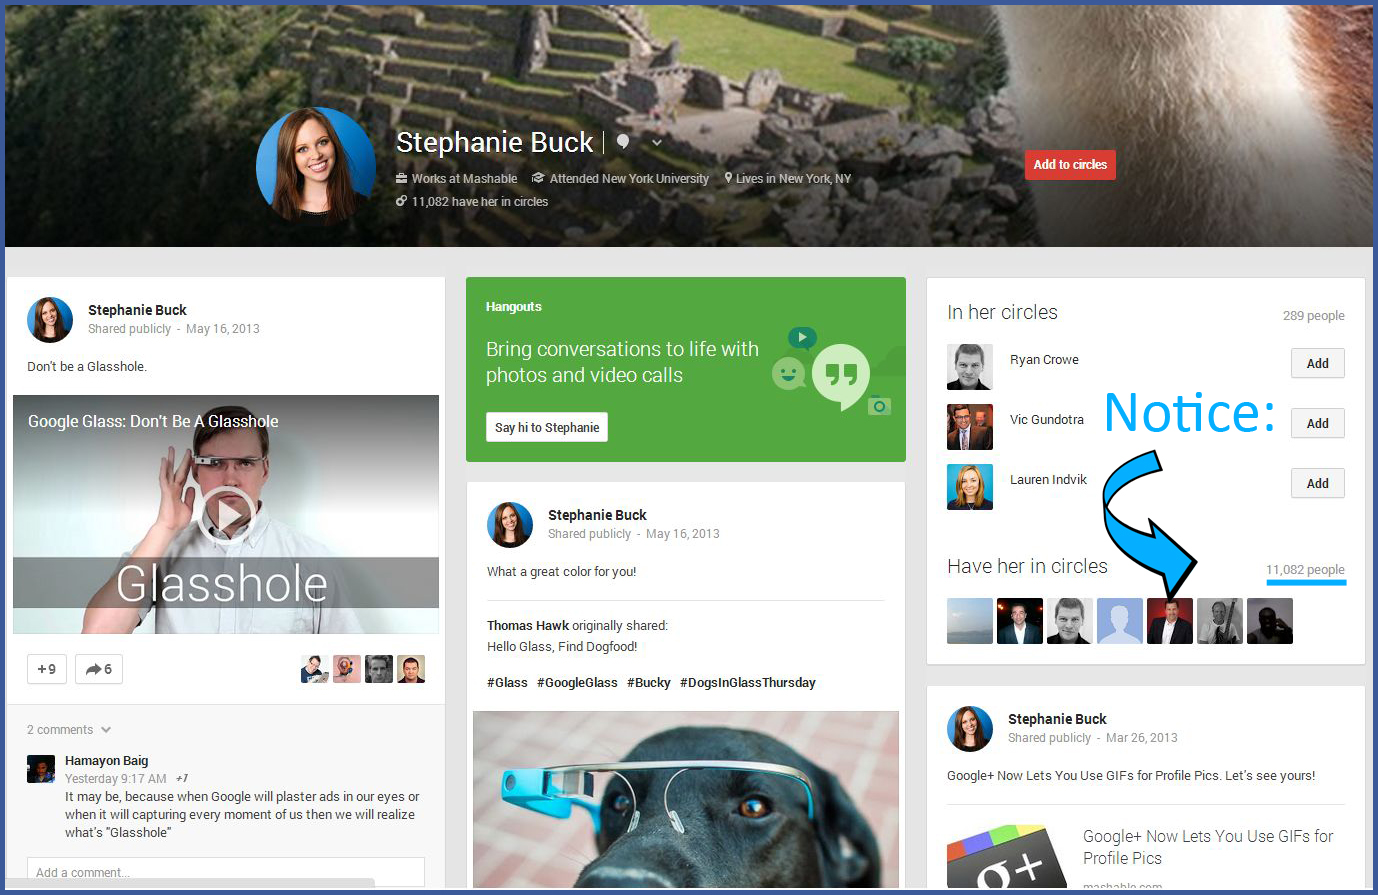 Google + is leveraged very well by Mashable's Stephanie Buck